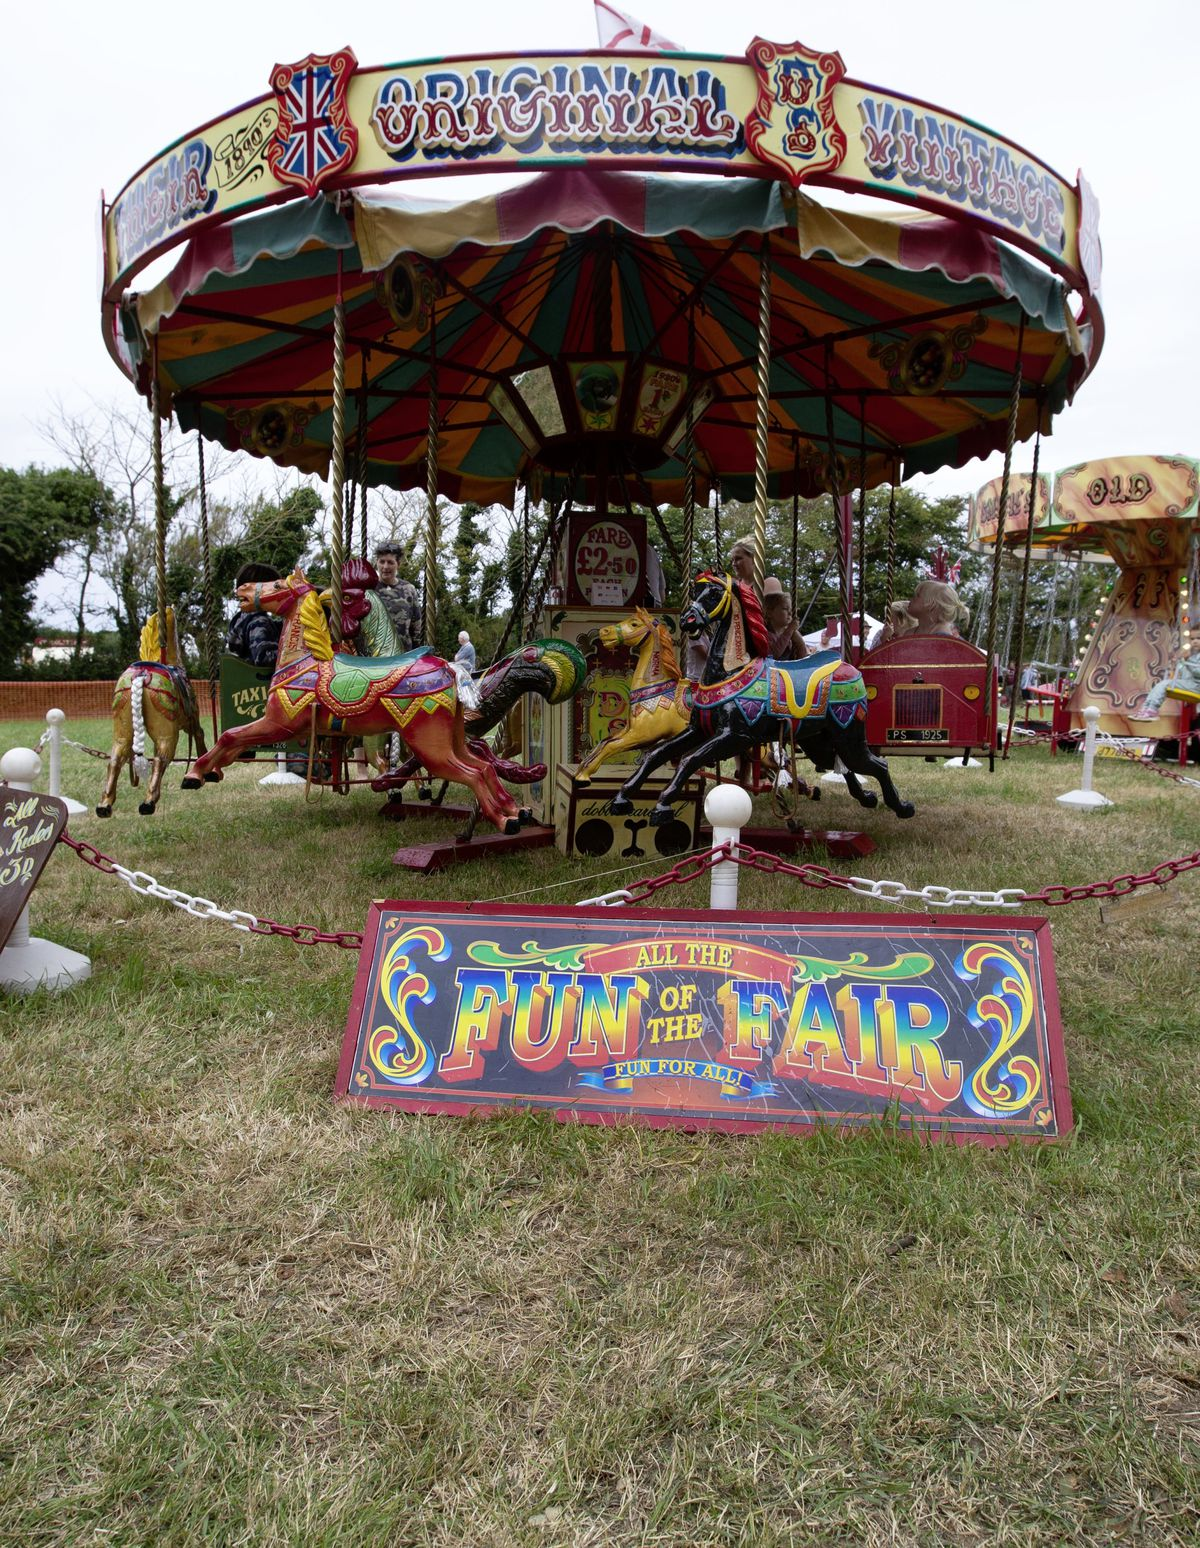 Evoking memories of days gone by, with its claim to have been established in the 1890s, was this fairground carousel. (29822290)